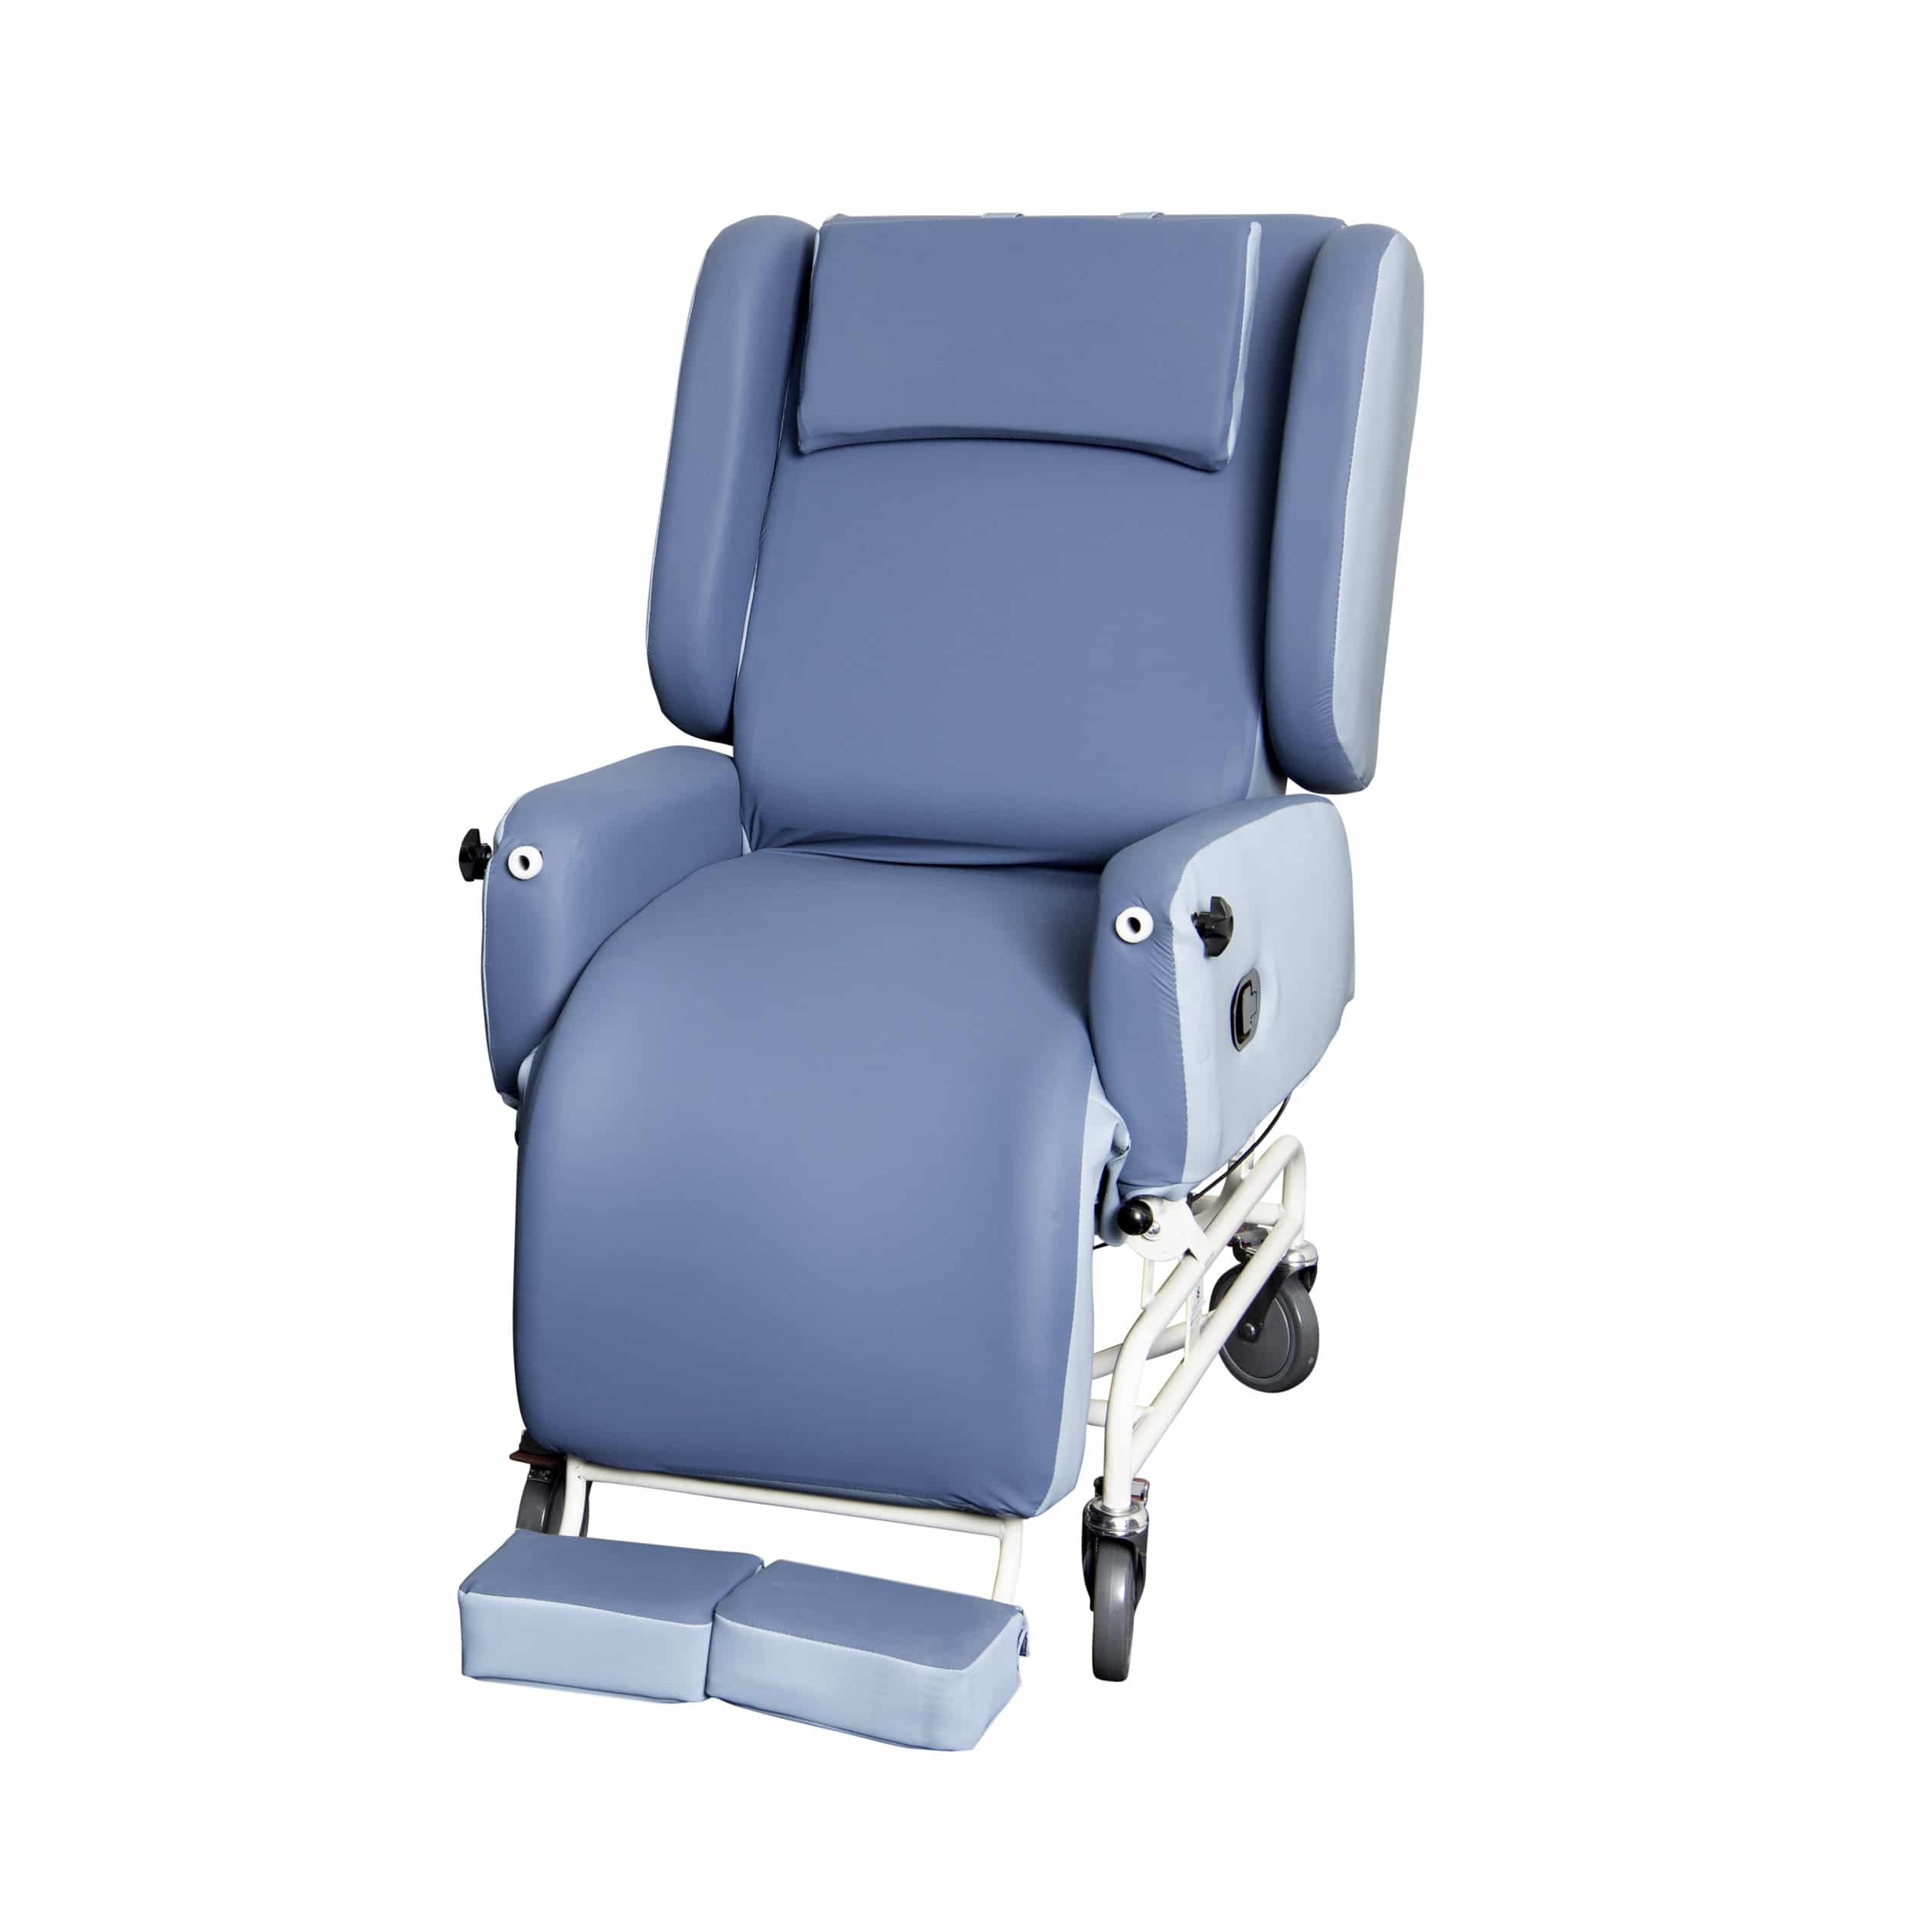 Air Chair Classic For Advanced Pressure Relief Cobalt Health